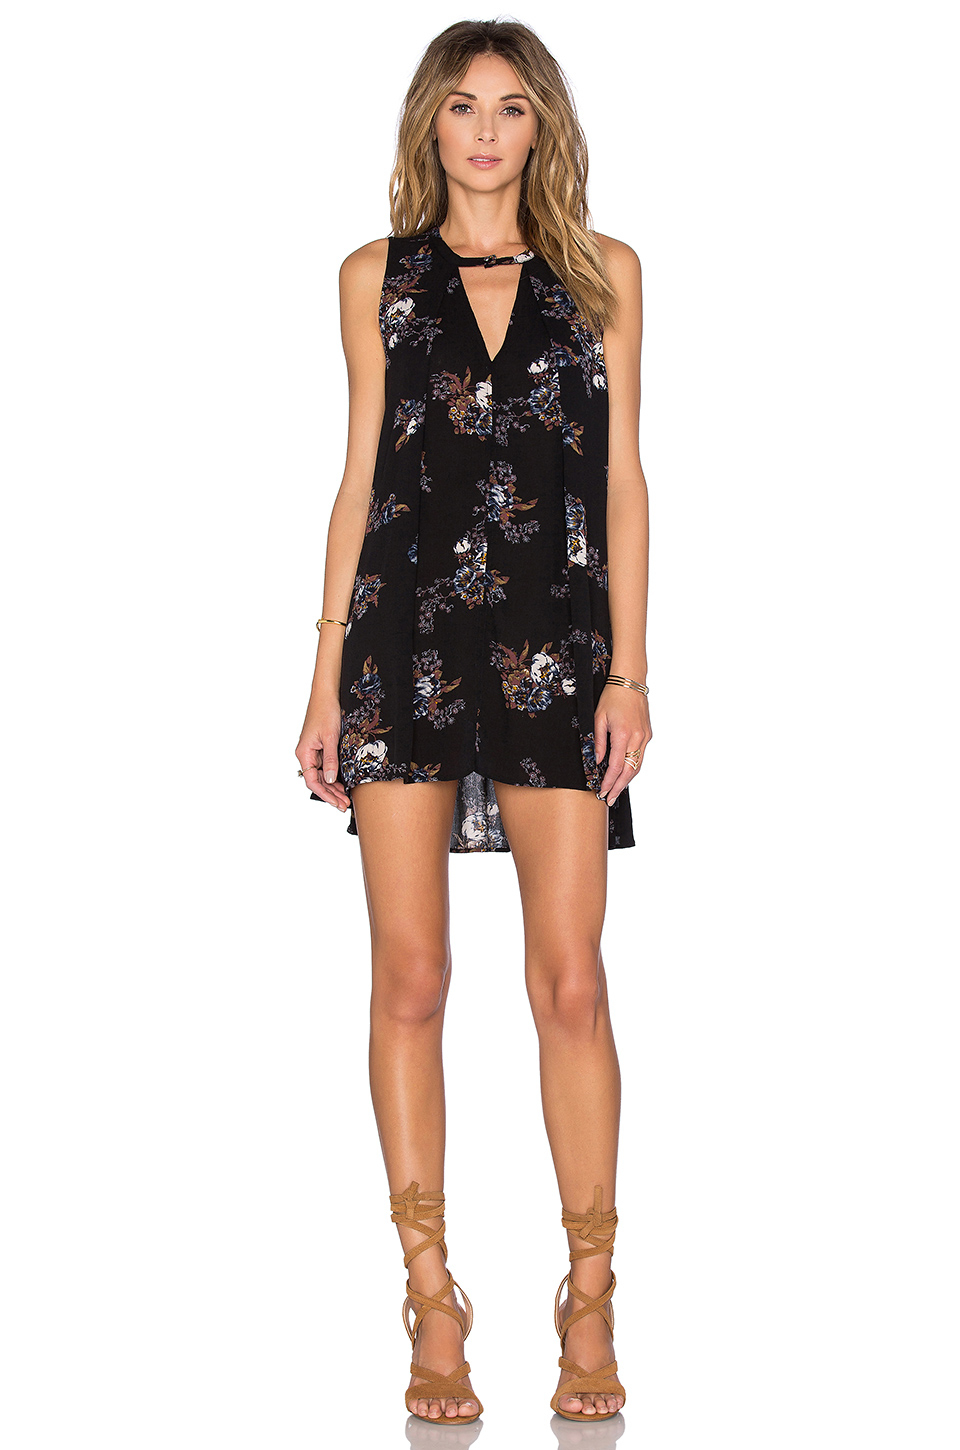 d457901f5cae Gallery. Previously sold at: REVOLVE · Women's Swing Dresses